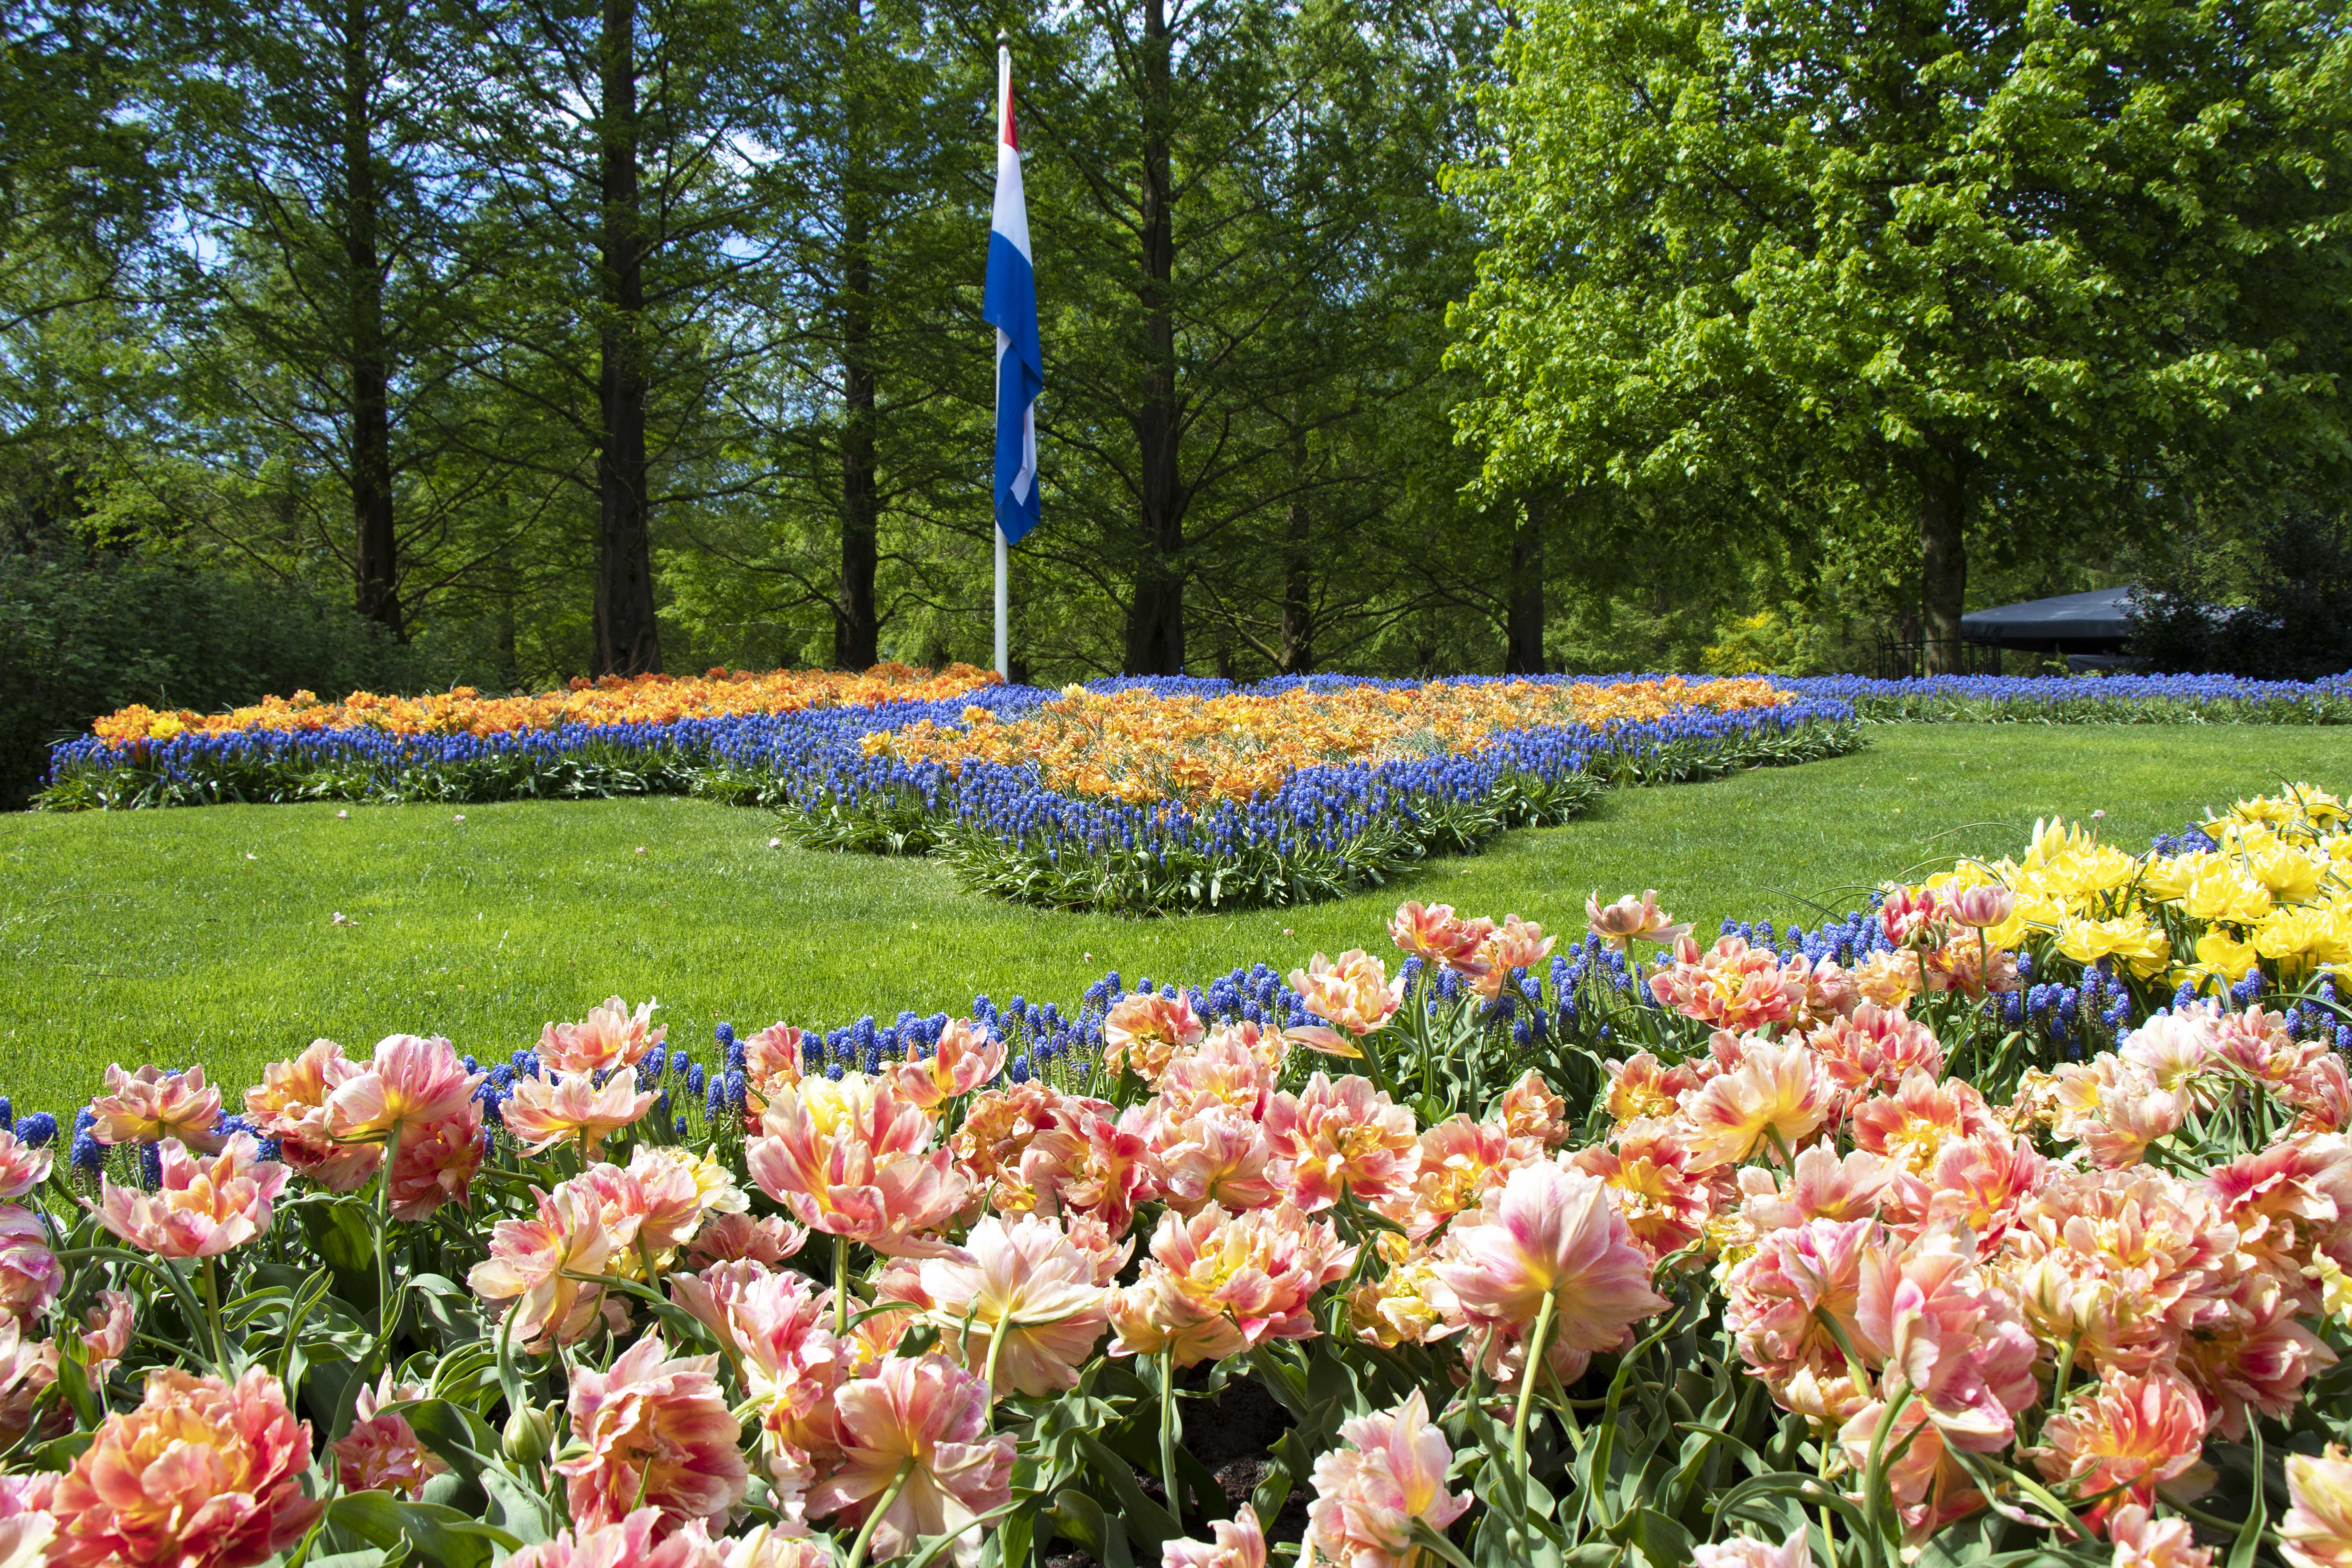 Tulip display at Keukenhof, Lisse, Netherlands